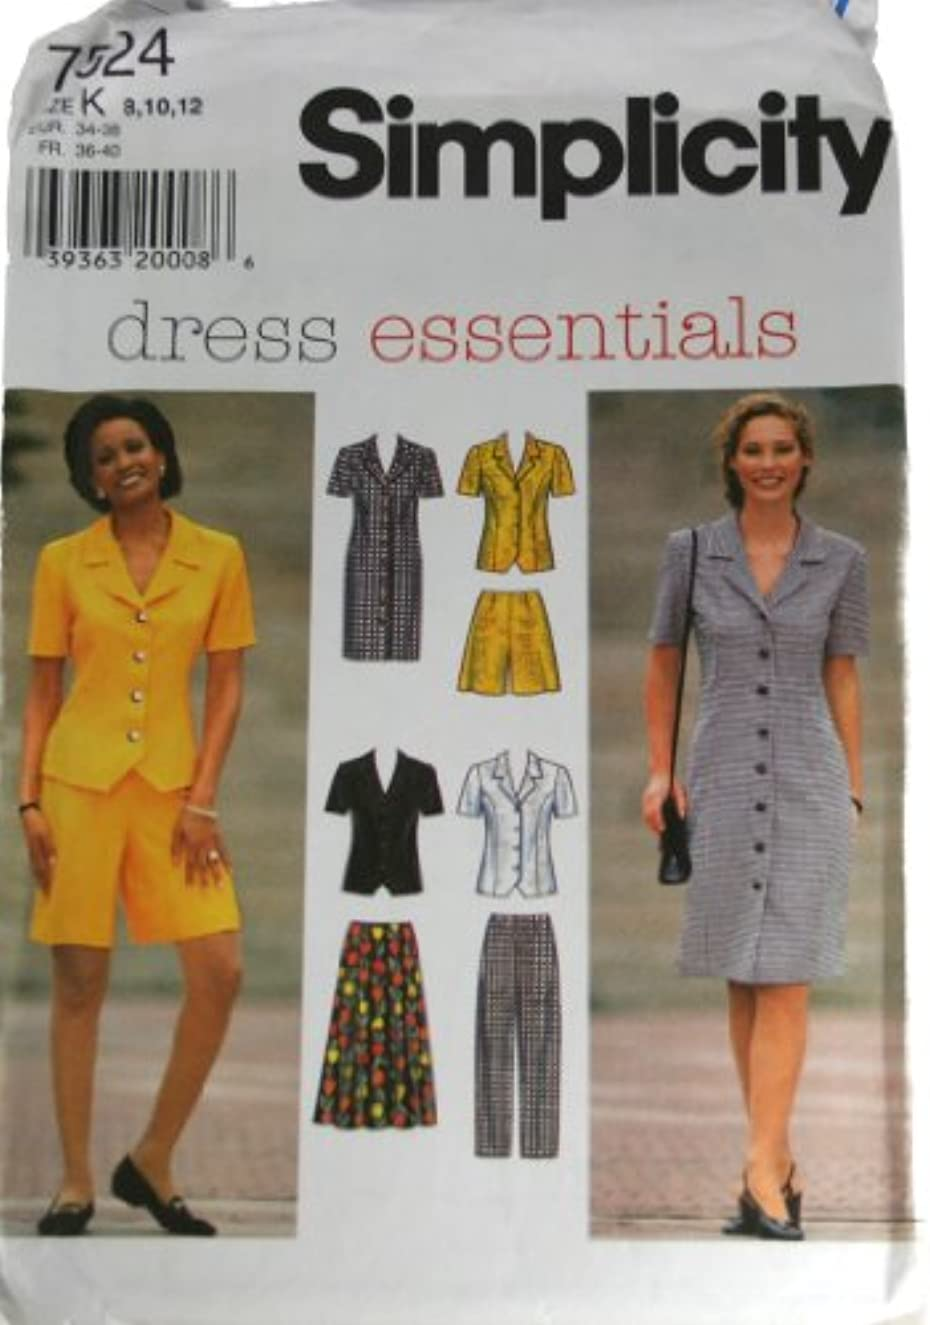 Simplicity 7524 Sewing Pattern Misses Dress or Top,Skirt,Pants and Shorts Size K 8,10,12